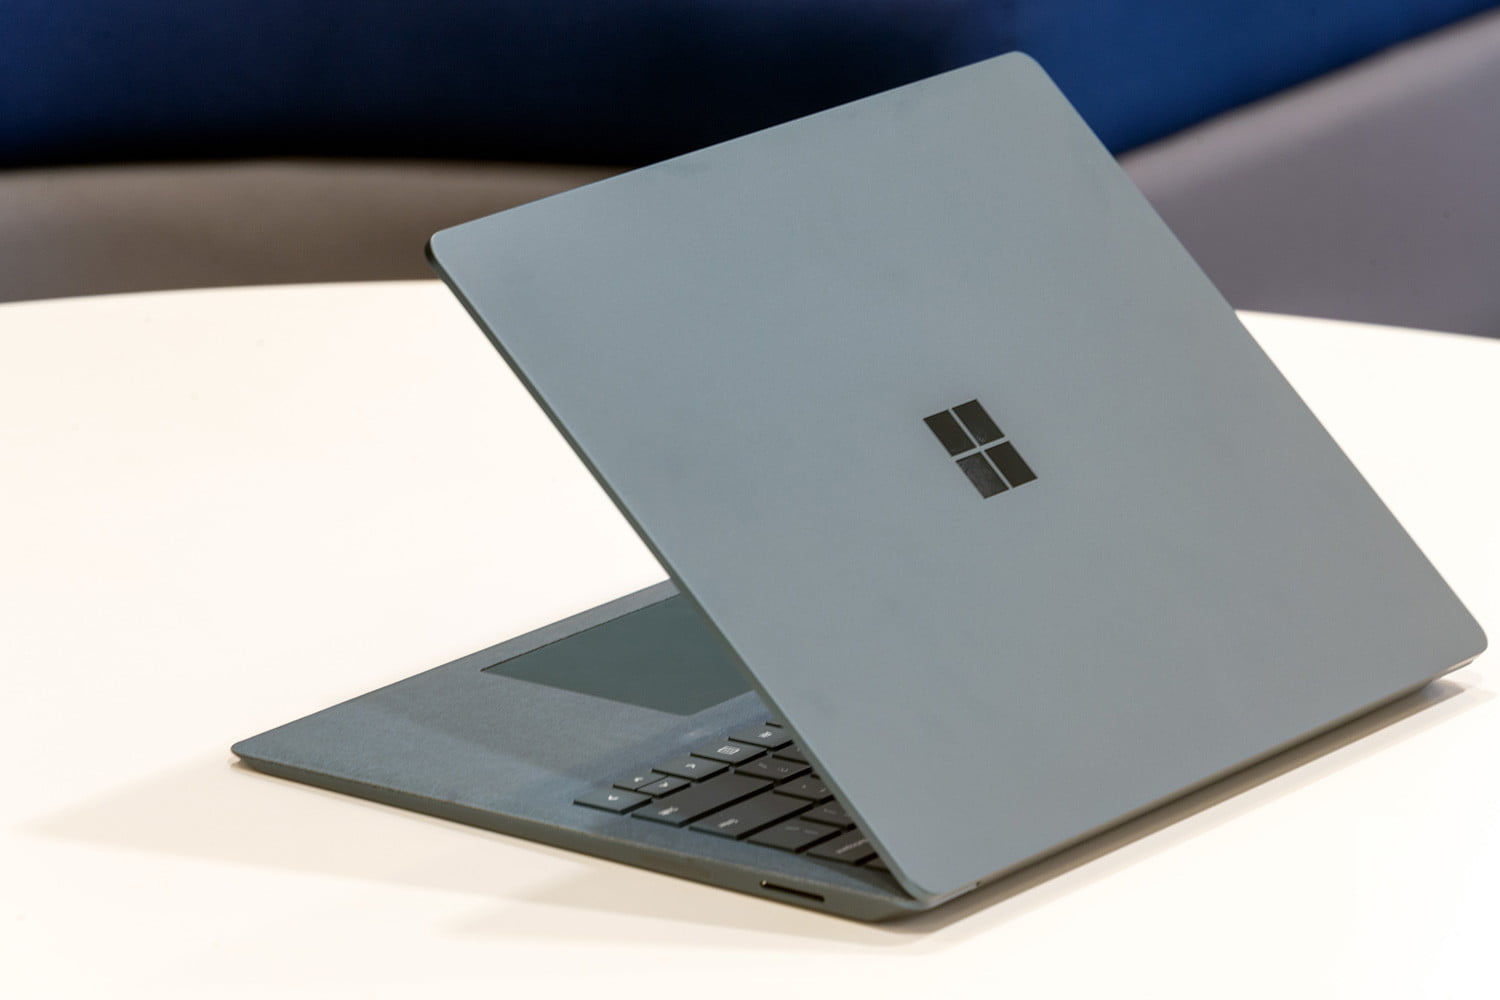 Microsoft Surface Laptop Review: A New Breed of PC